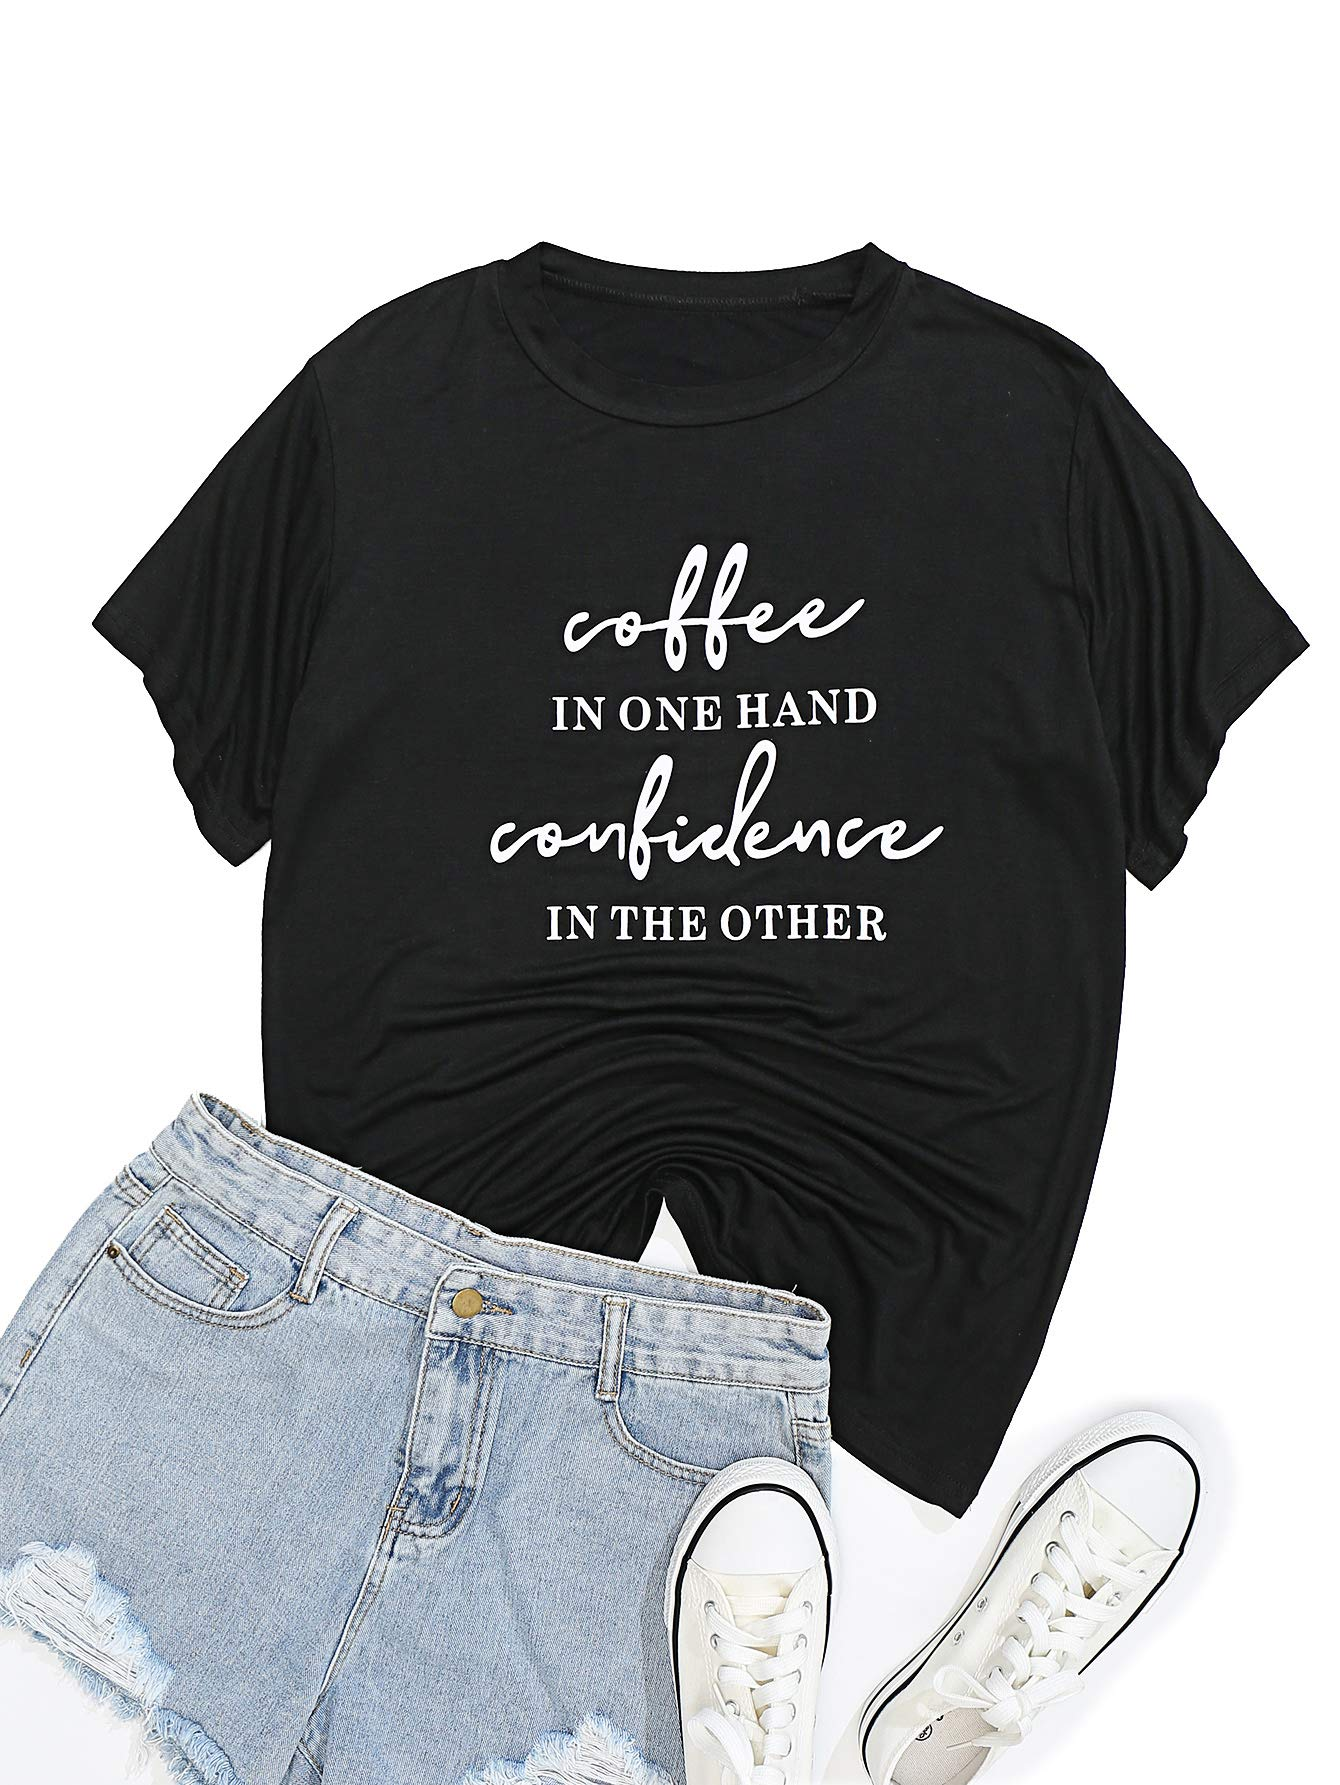 Womens Funny Letter Print Cute Graphic Tops Tees Casual Short Sleeve Vacation